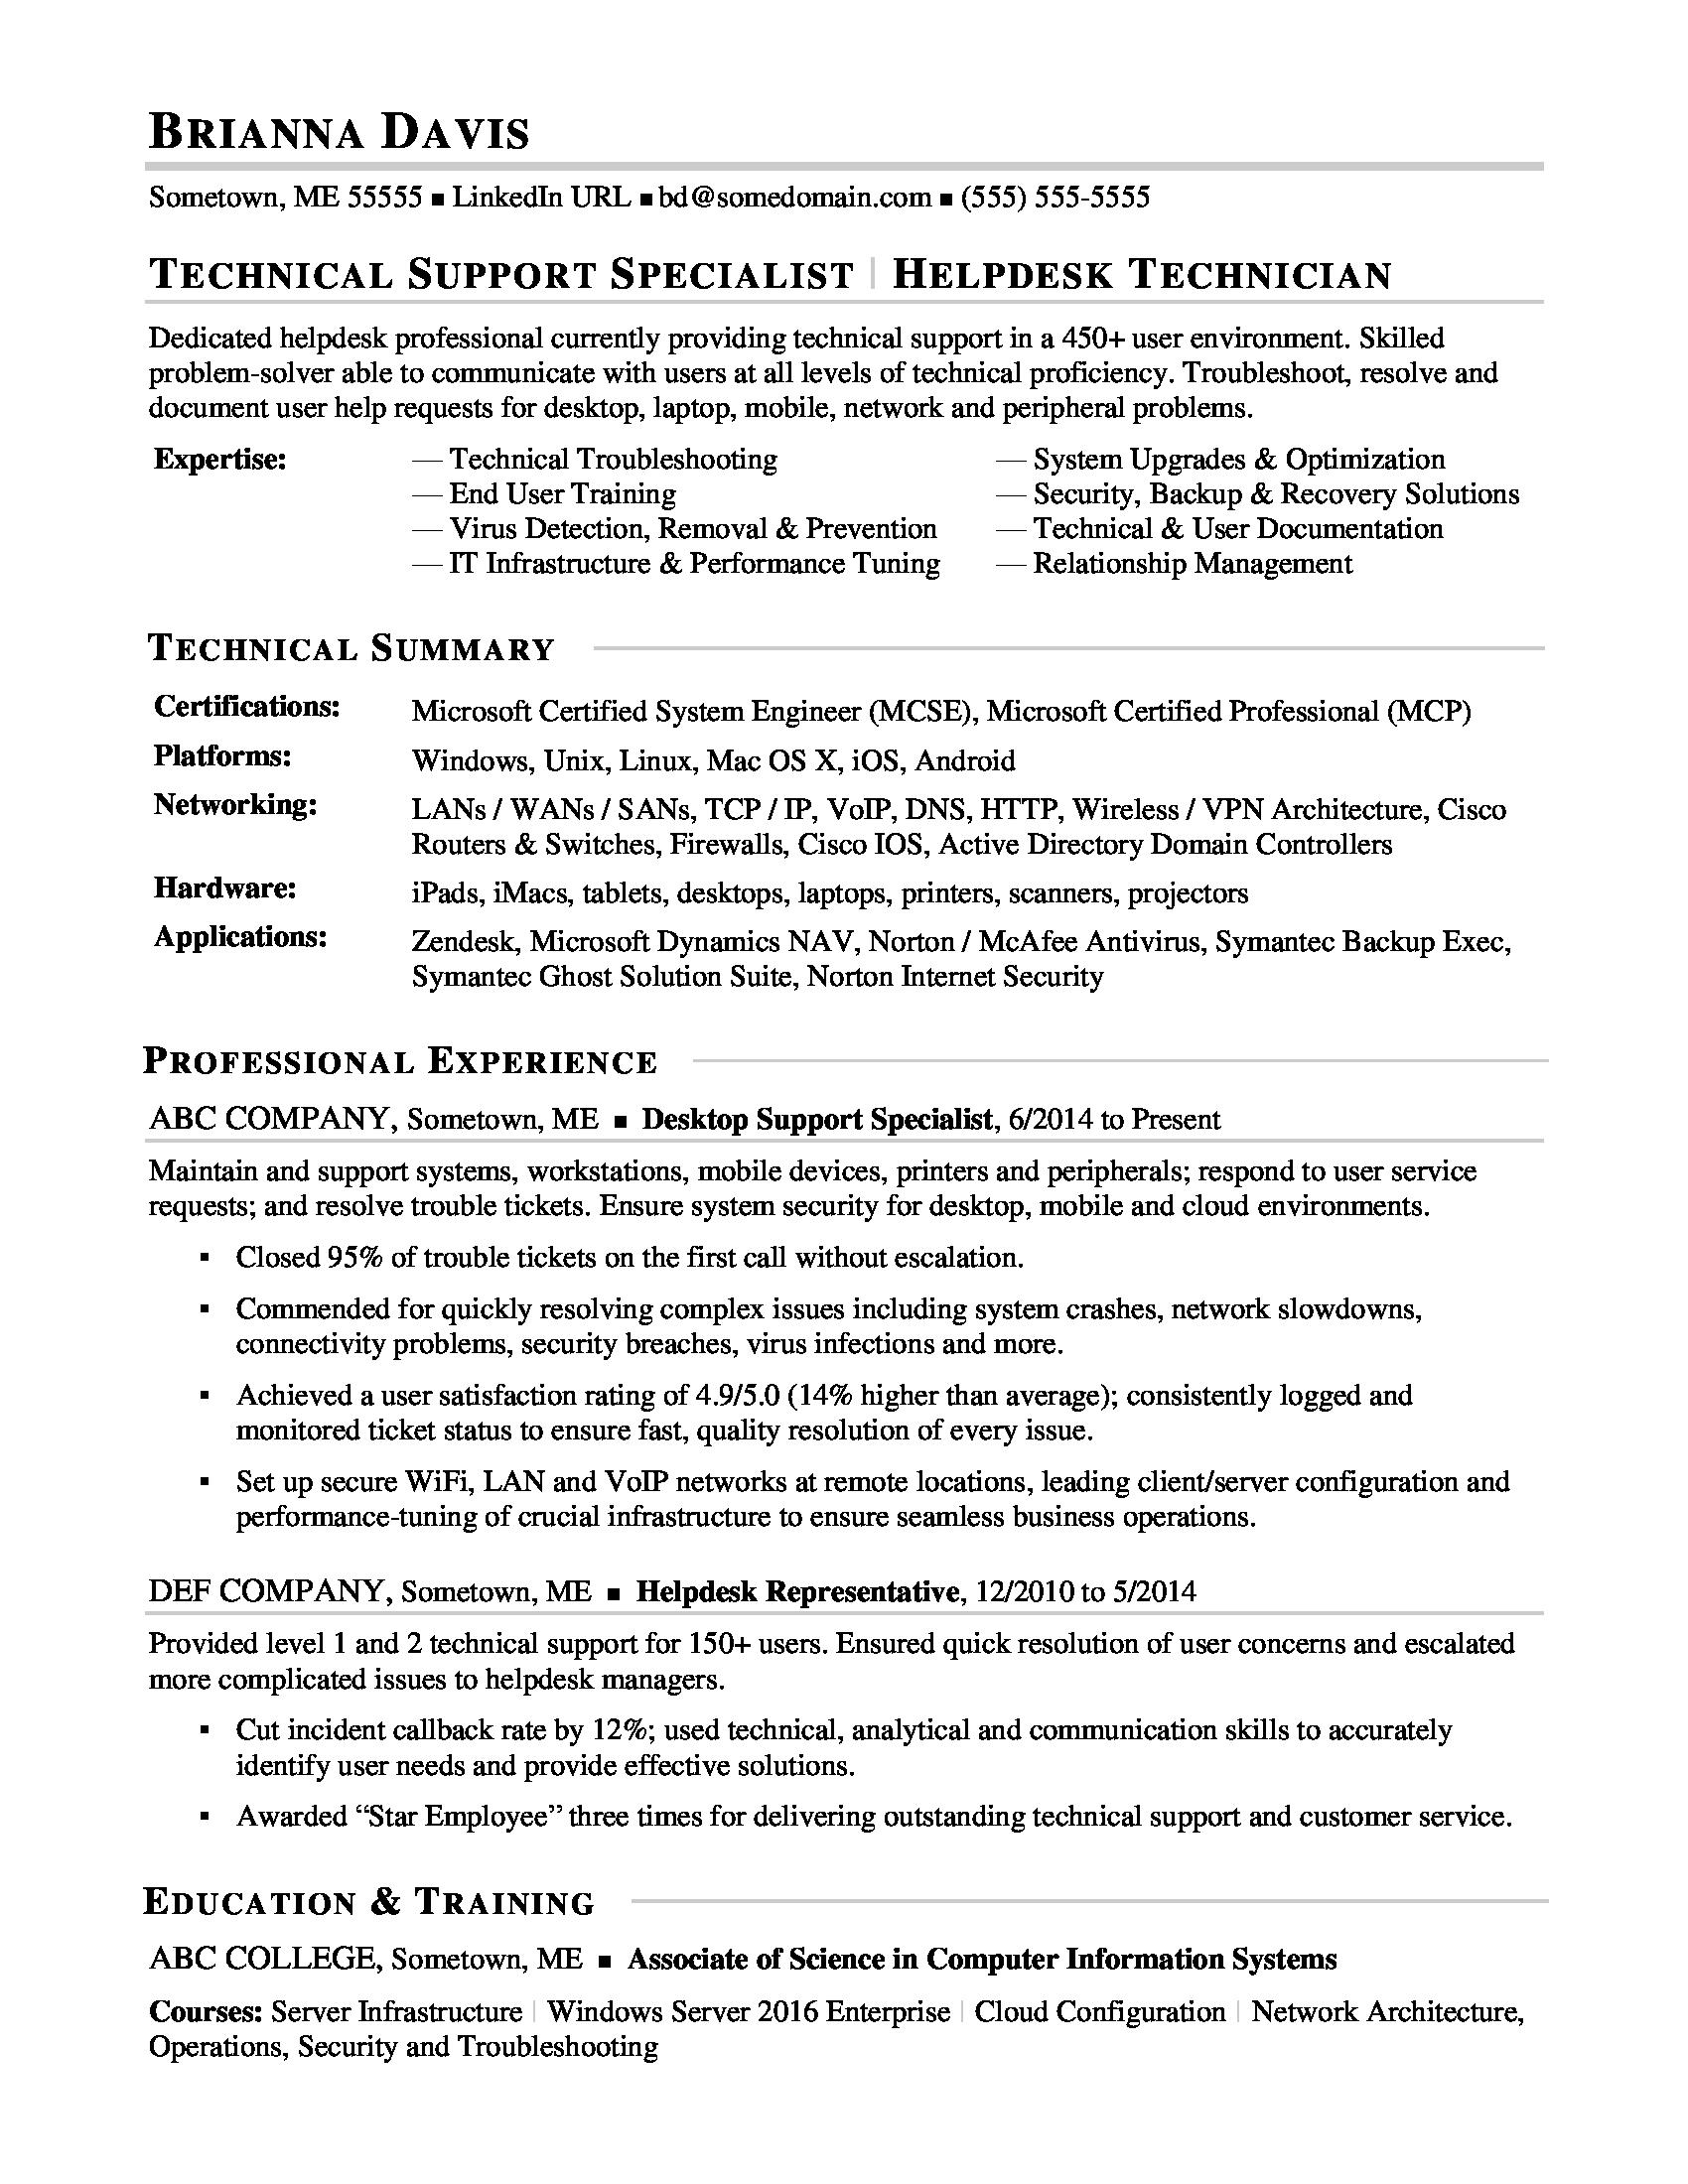 Staff analyst resume